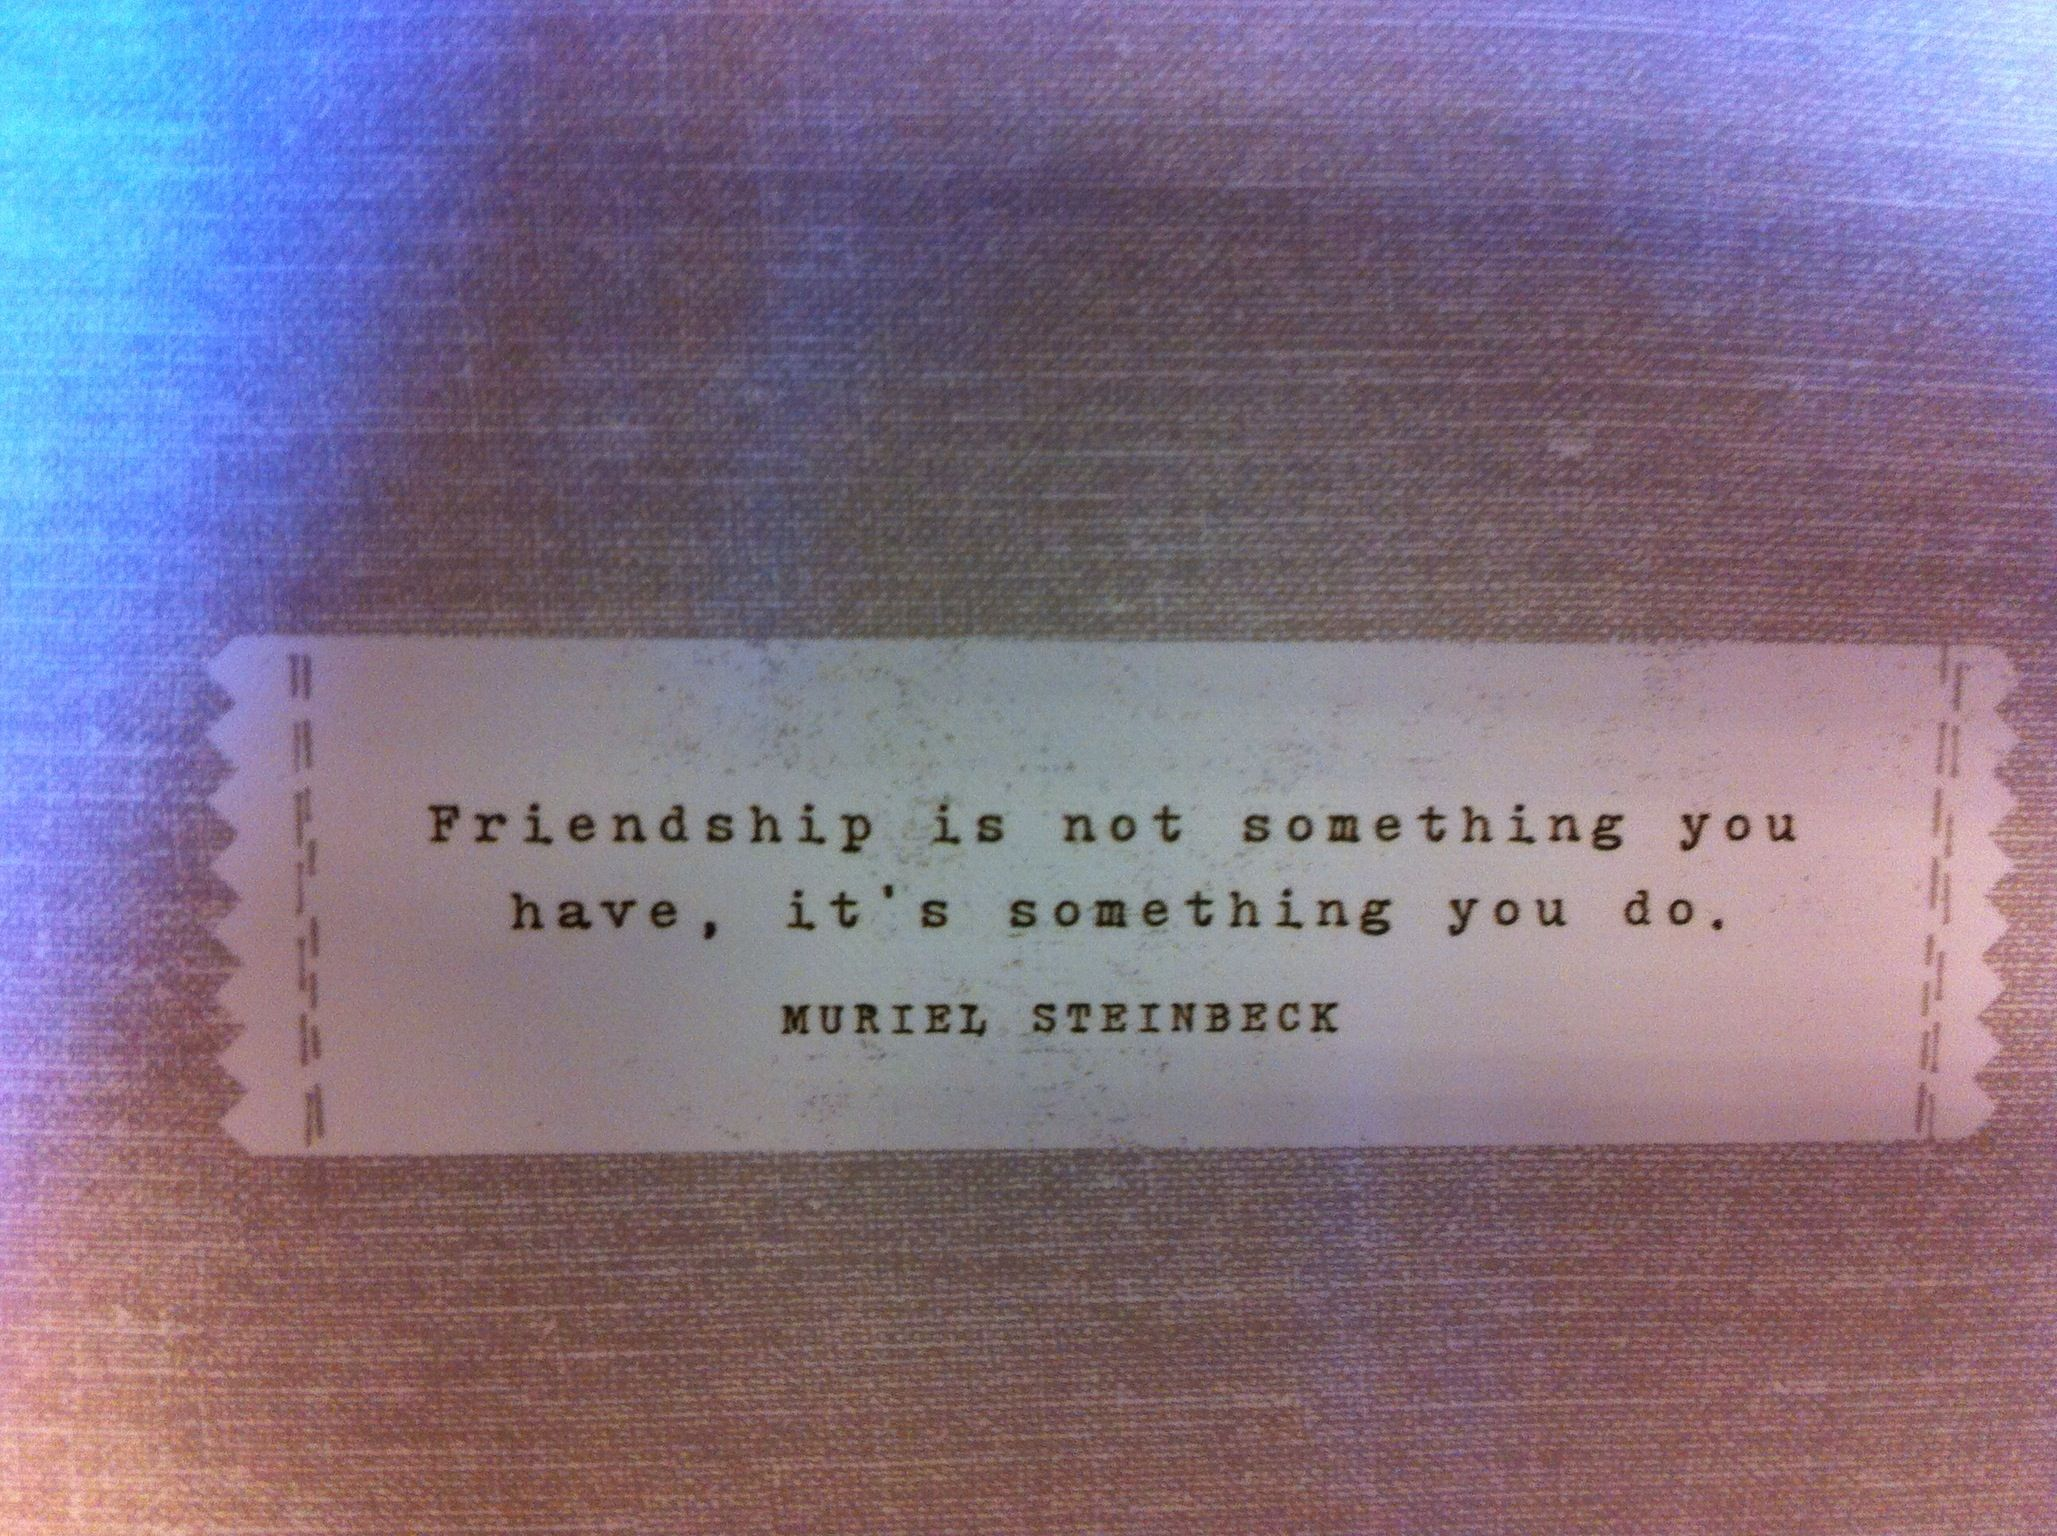 Friendship is not something you have, it's something you do.